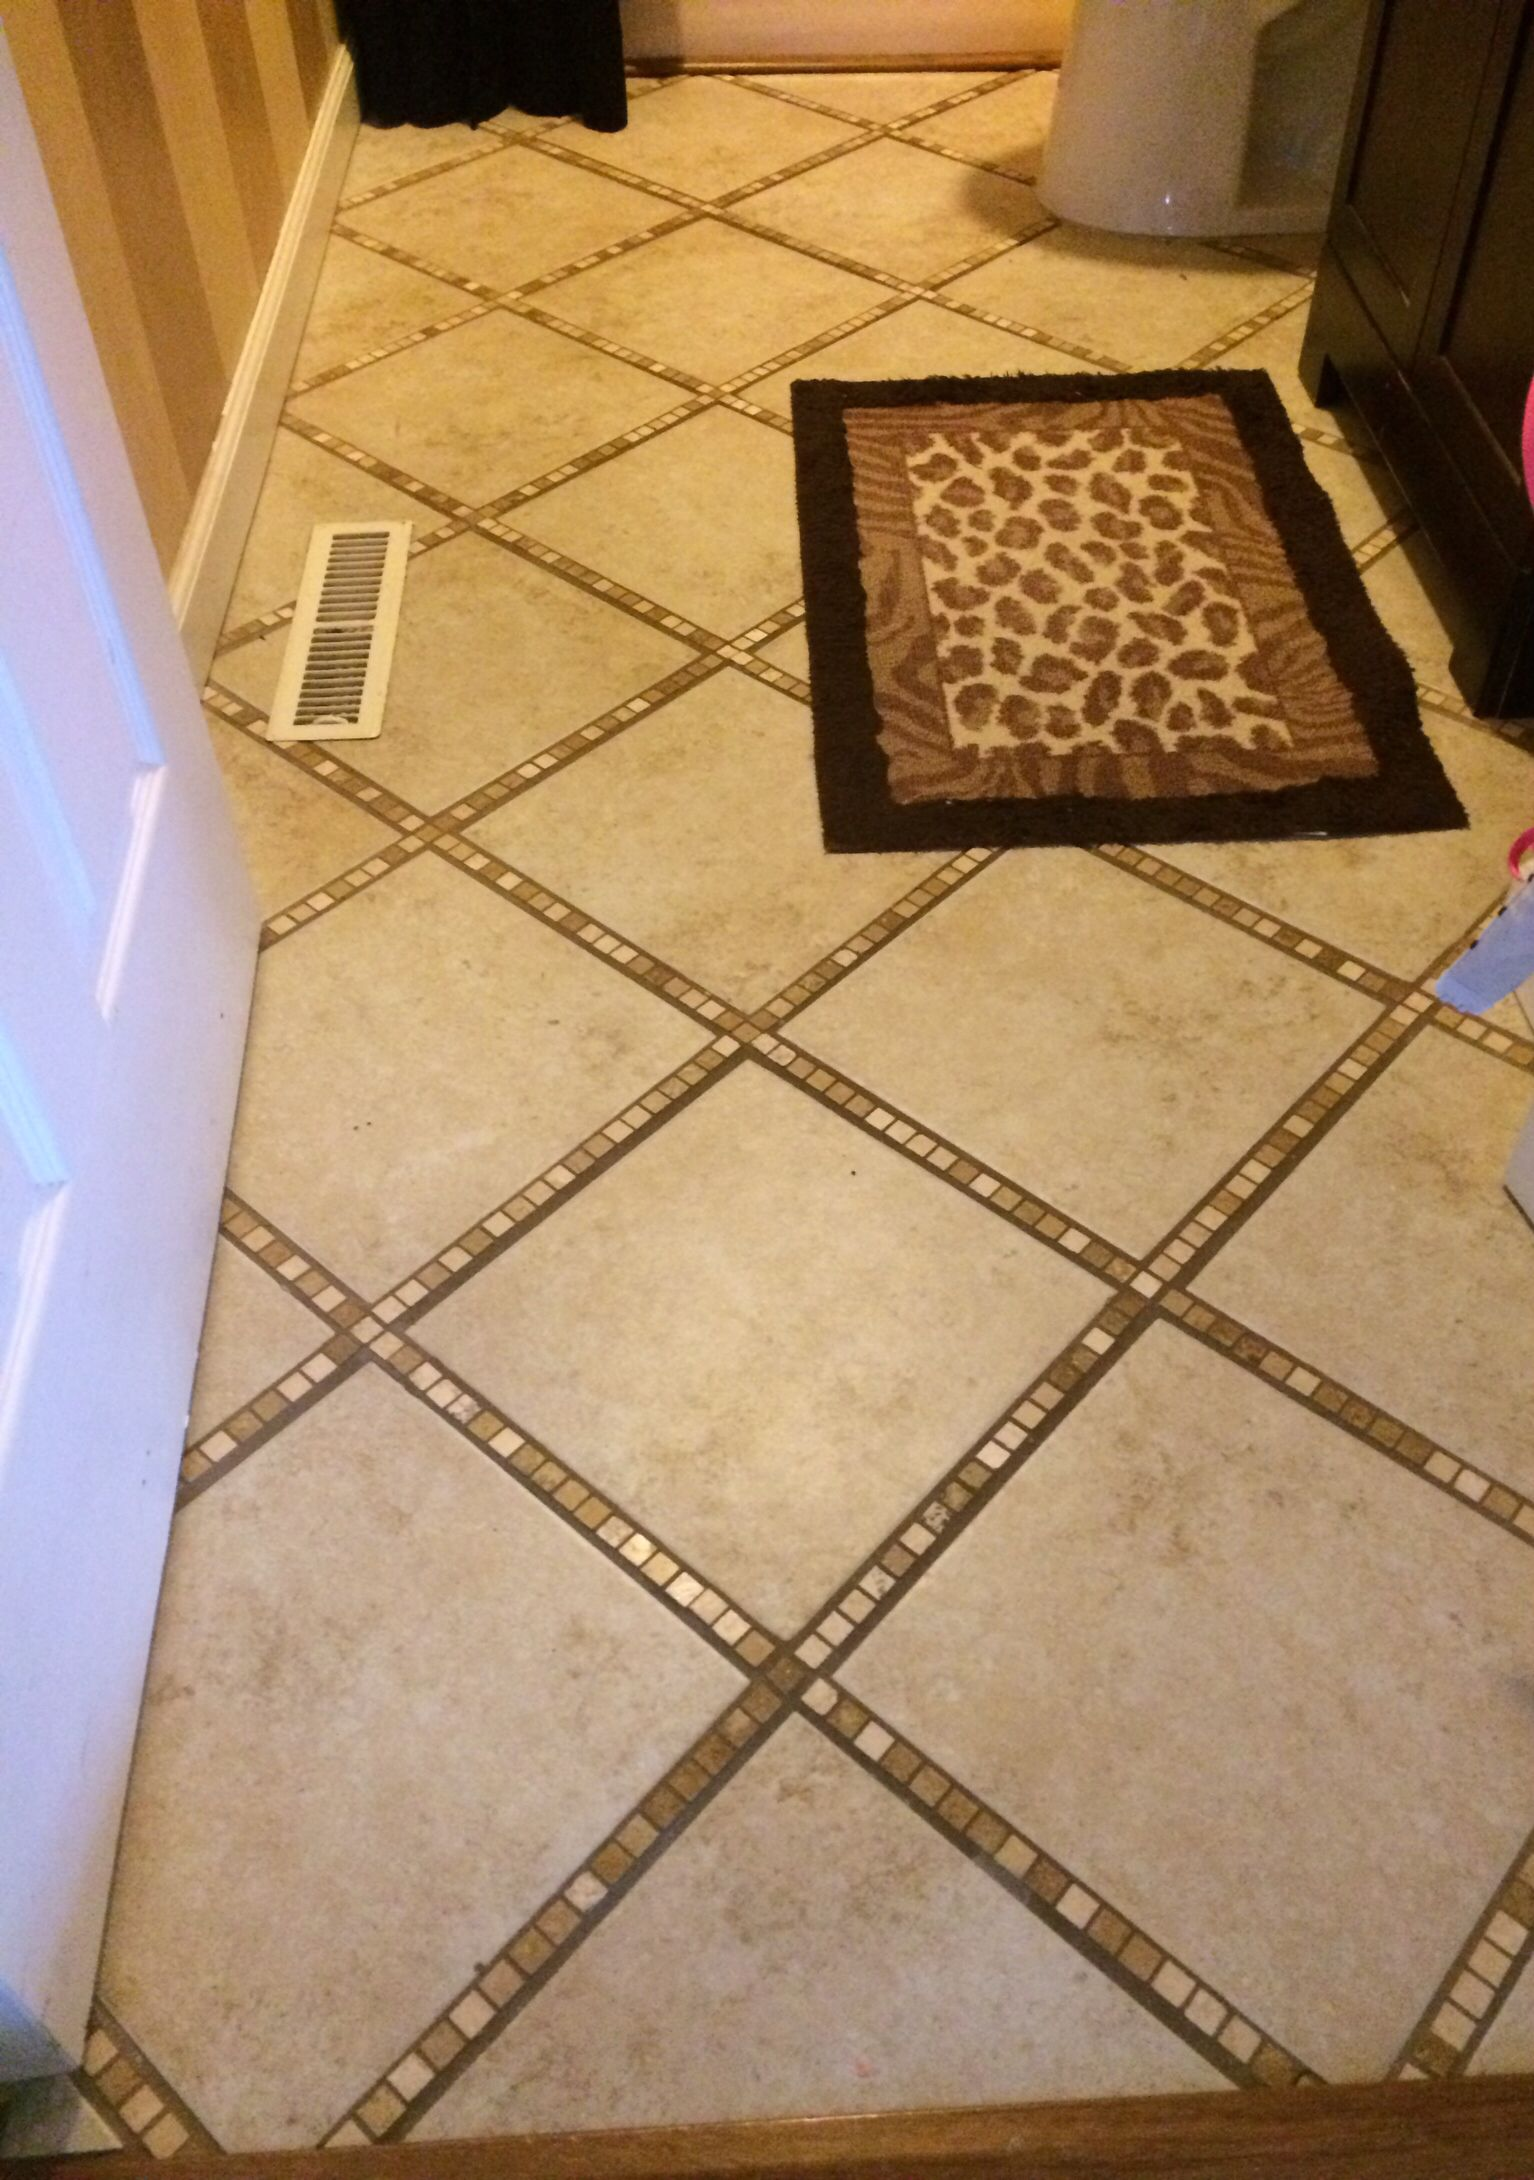 I Tiled My Bathroom Floor In A Diagonal Pattern Using Tiny Mosaic Square Travertine Tiles In The